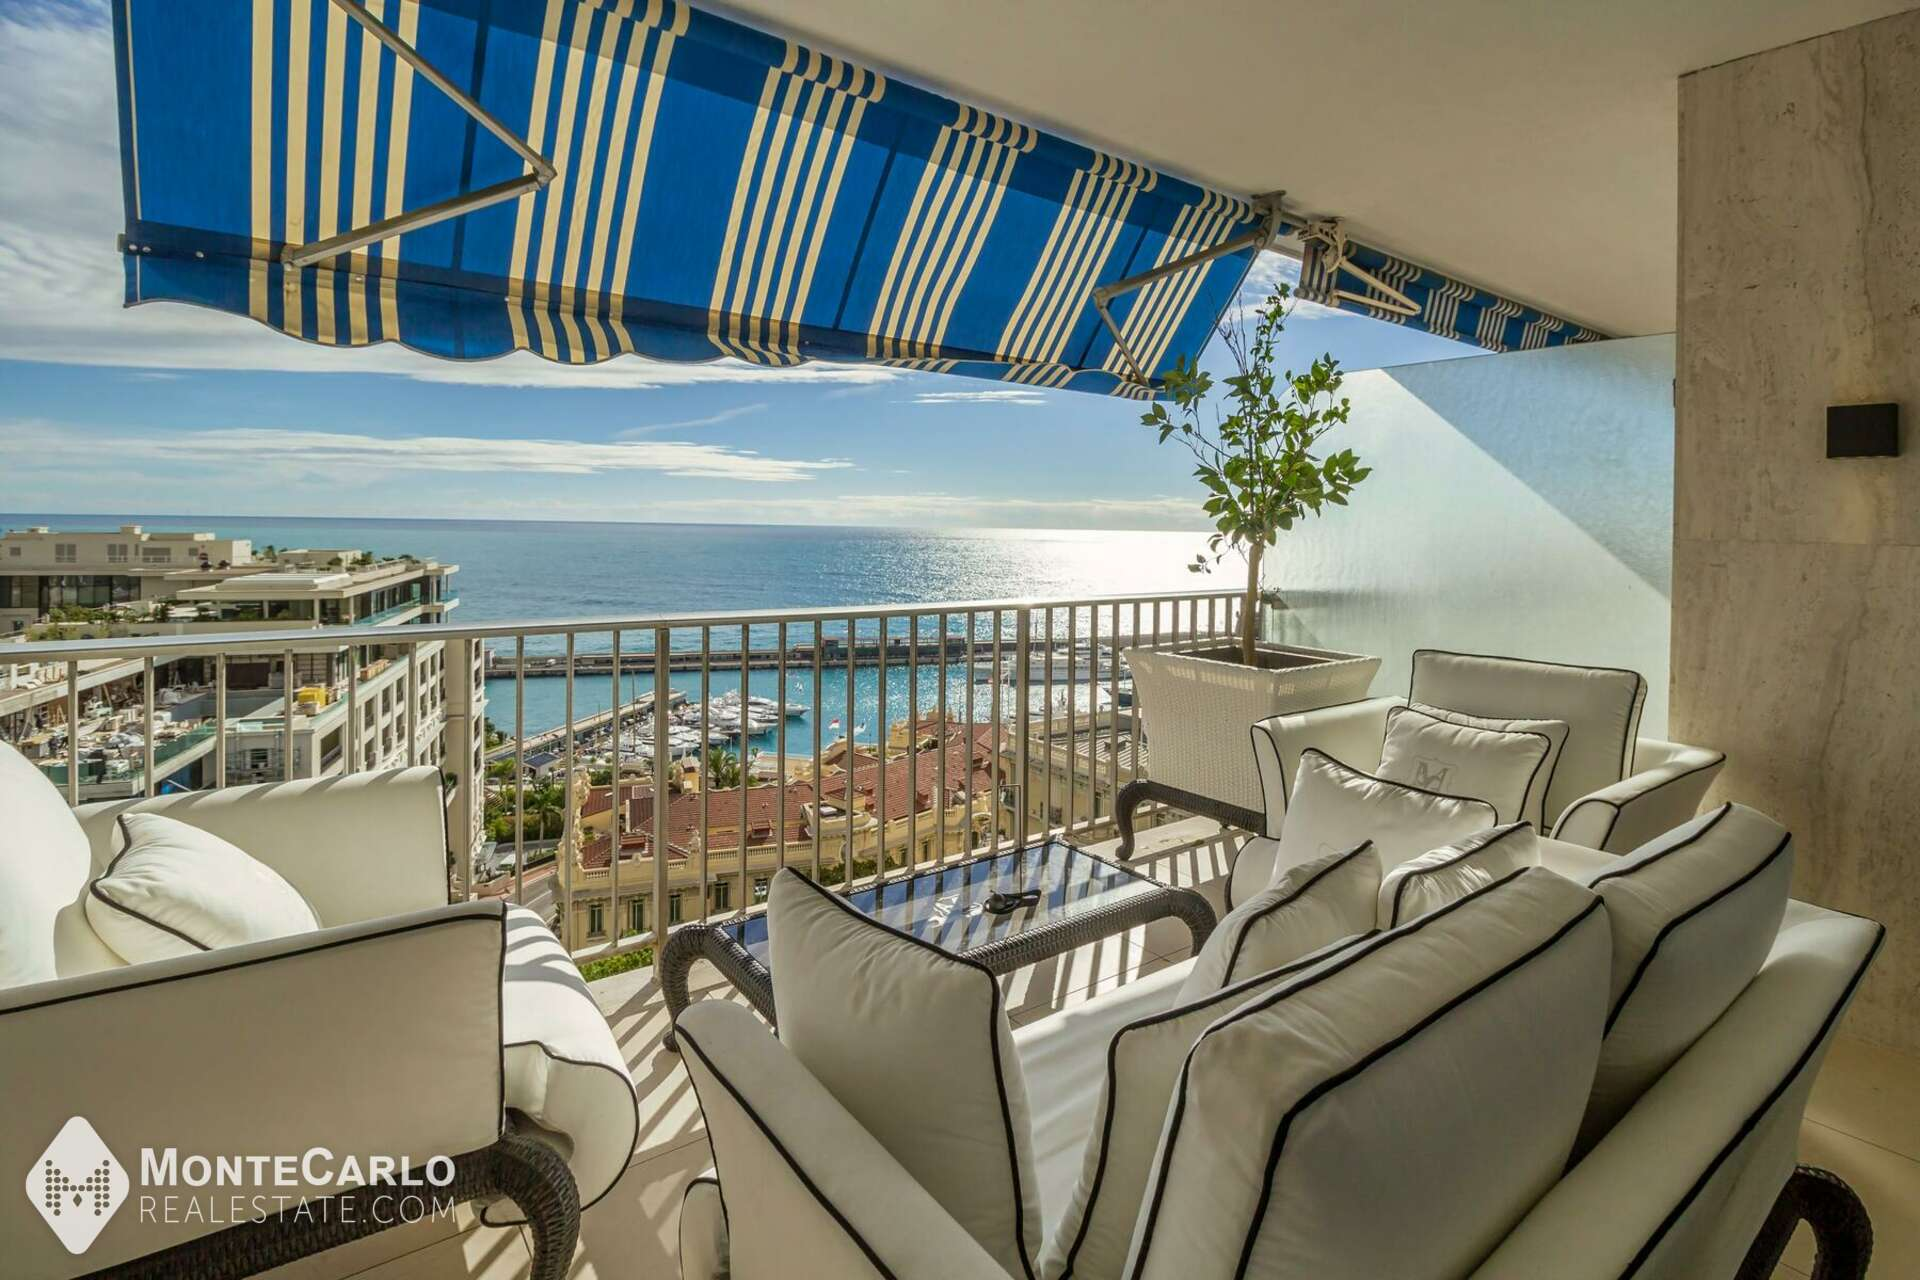 Location Sun Tower - Appartement / 5 pièces : 30 500 € | Monte-Carlo Real Estate [LCO - ST - 03]